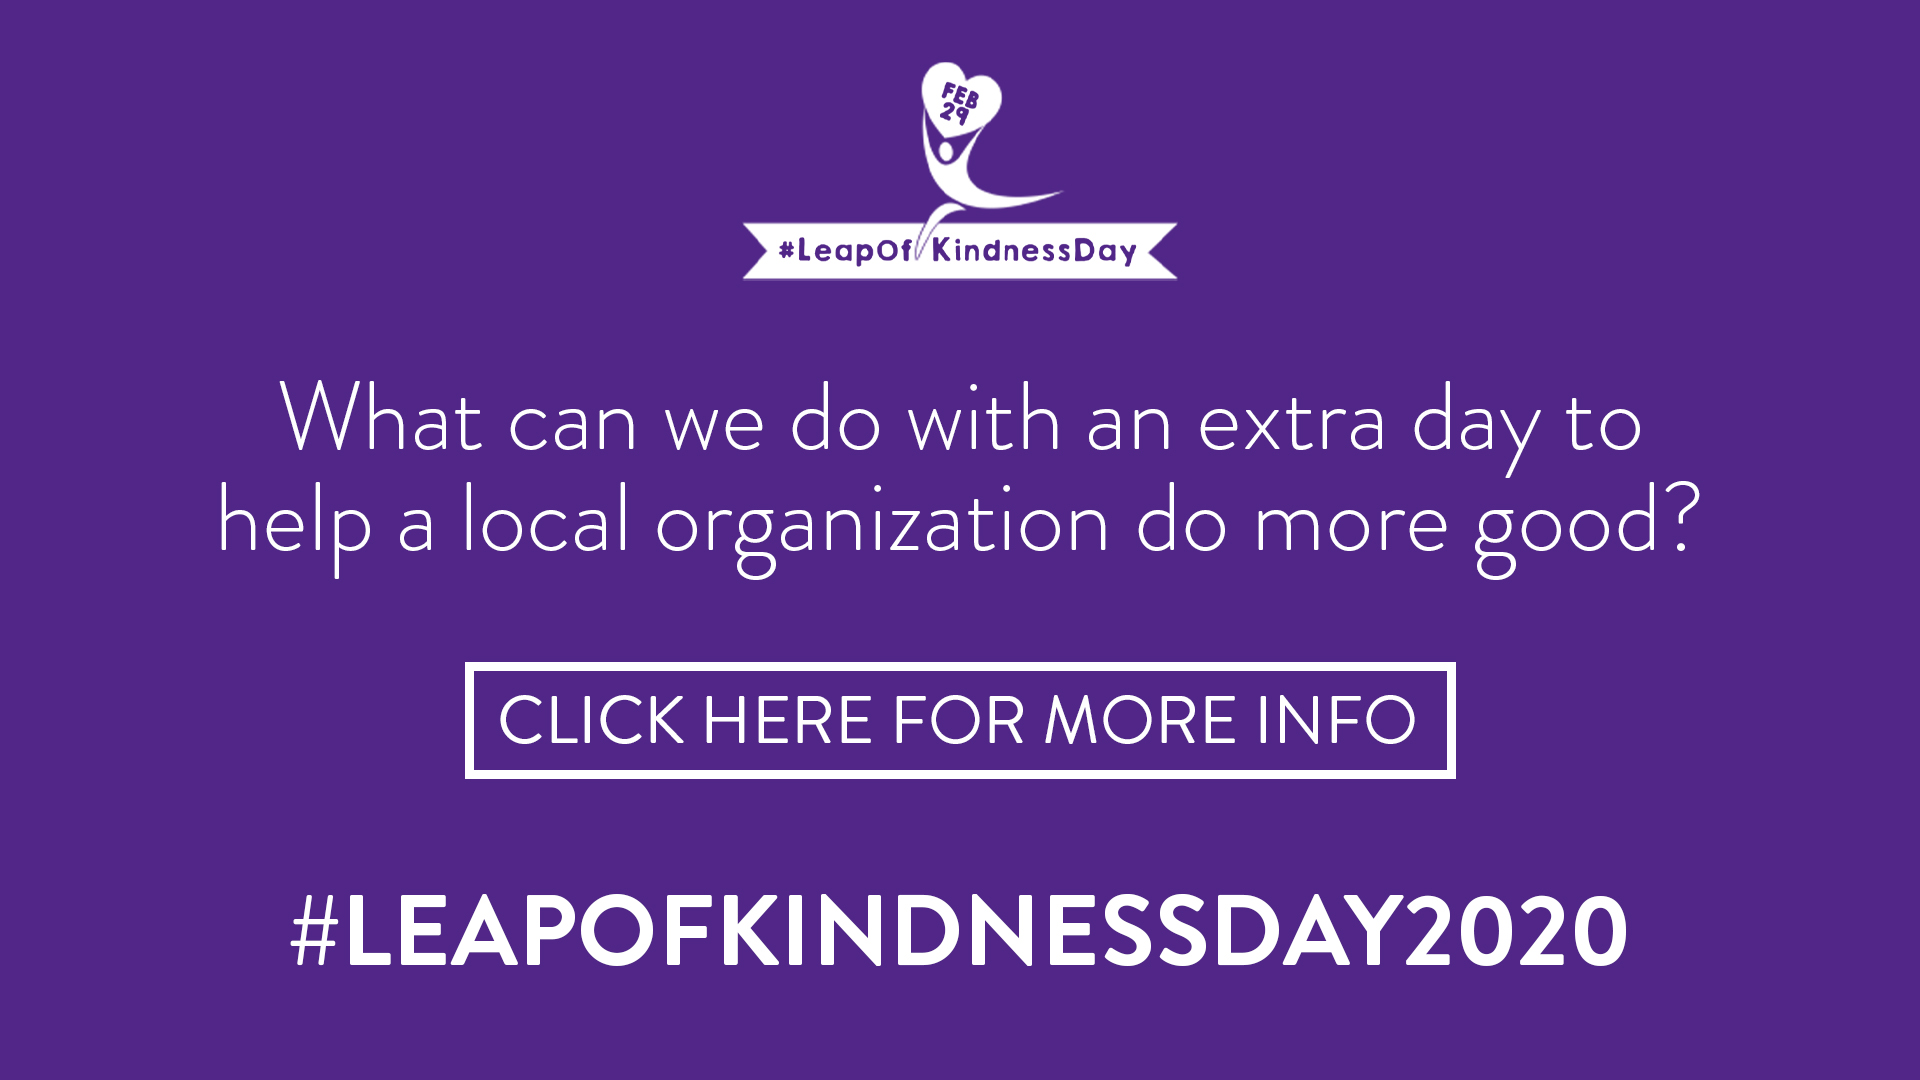 Leap of Kindness Day 2020